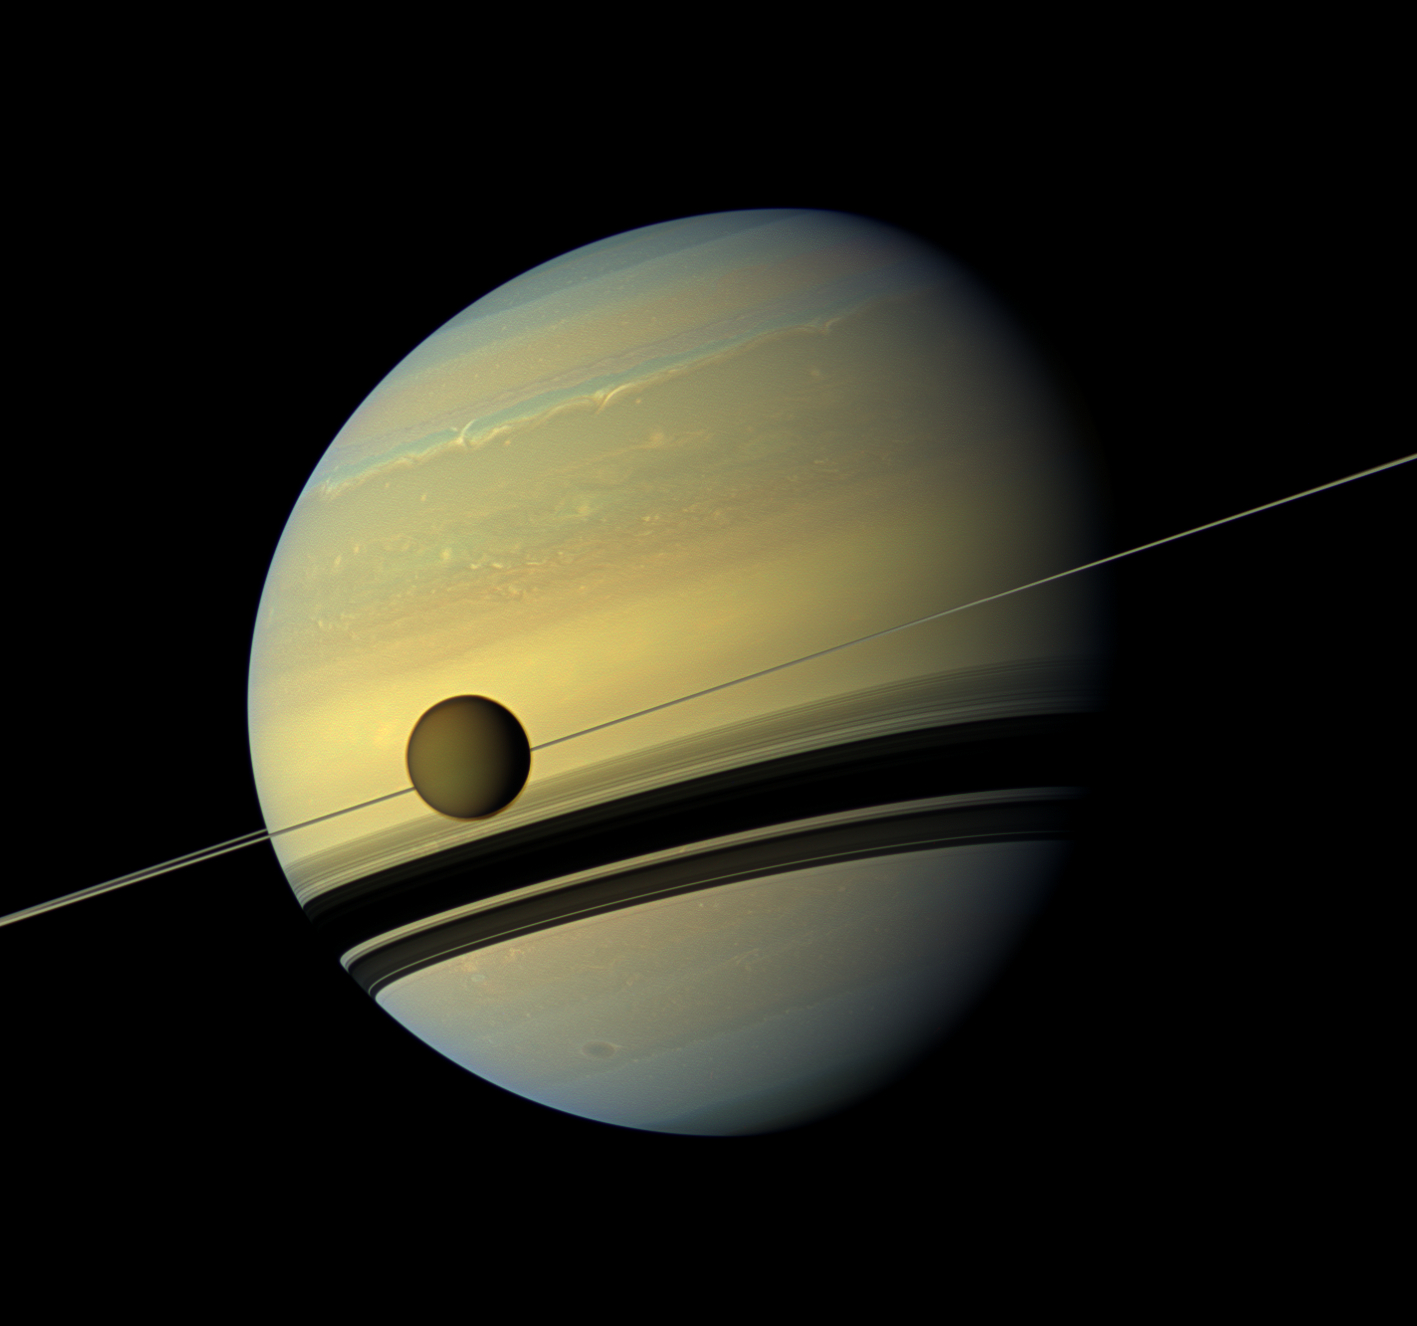 Saturn Moon Has Chemical That Could Form 'Membranes' | NASA